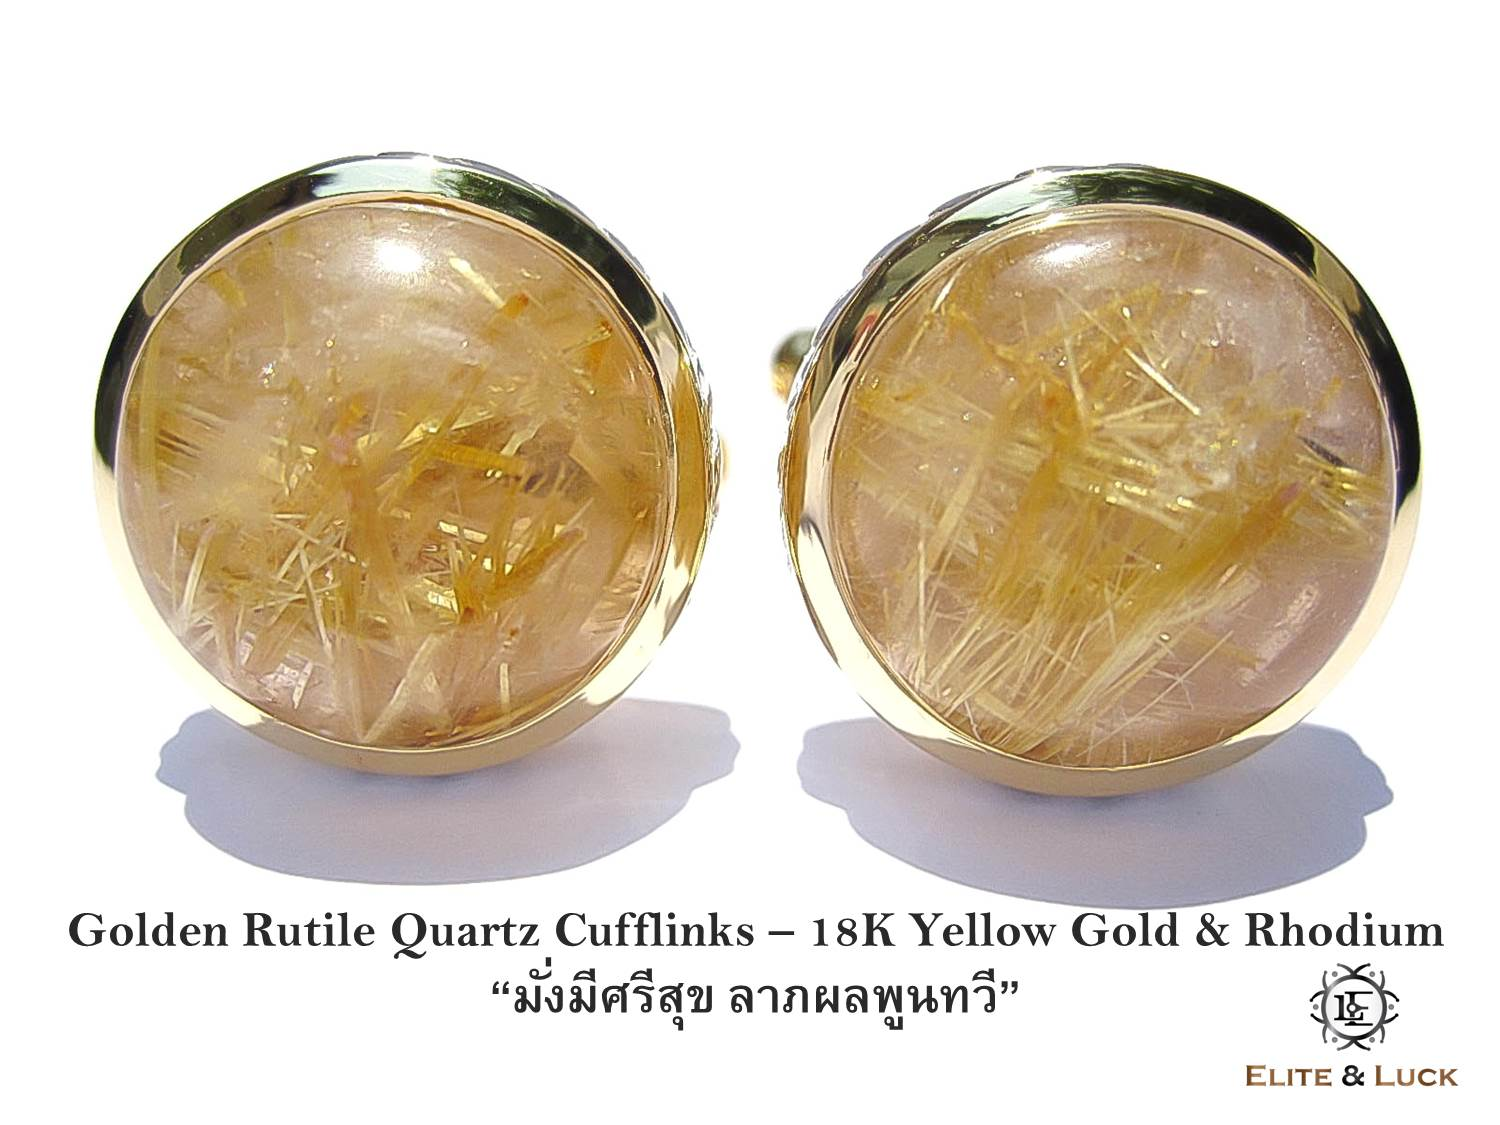 Golden Rutile Quartz Cufflinks สี 18K Yellow Gold & Rhodium รุ่น Limited